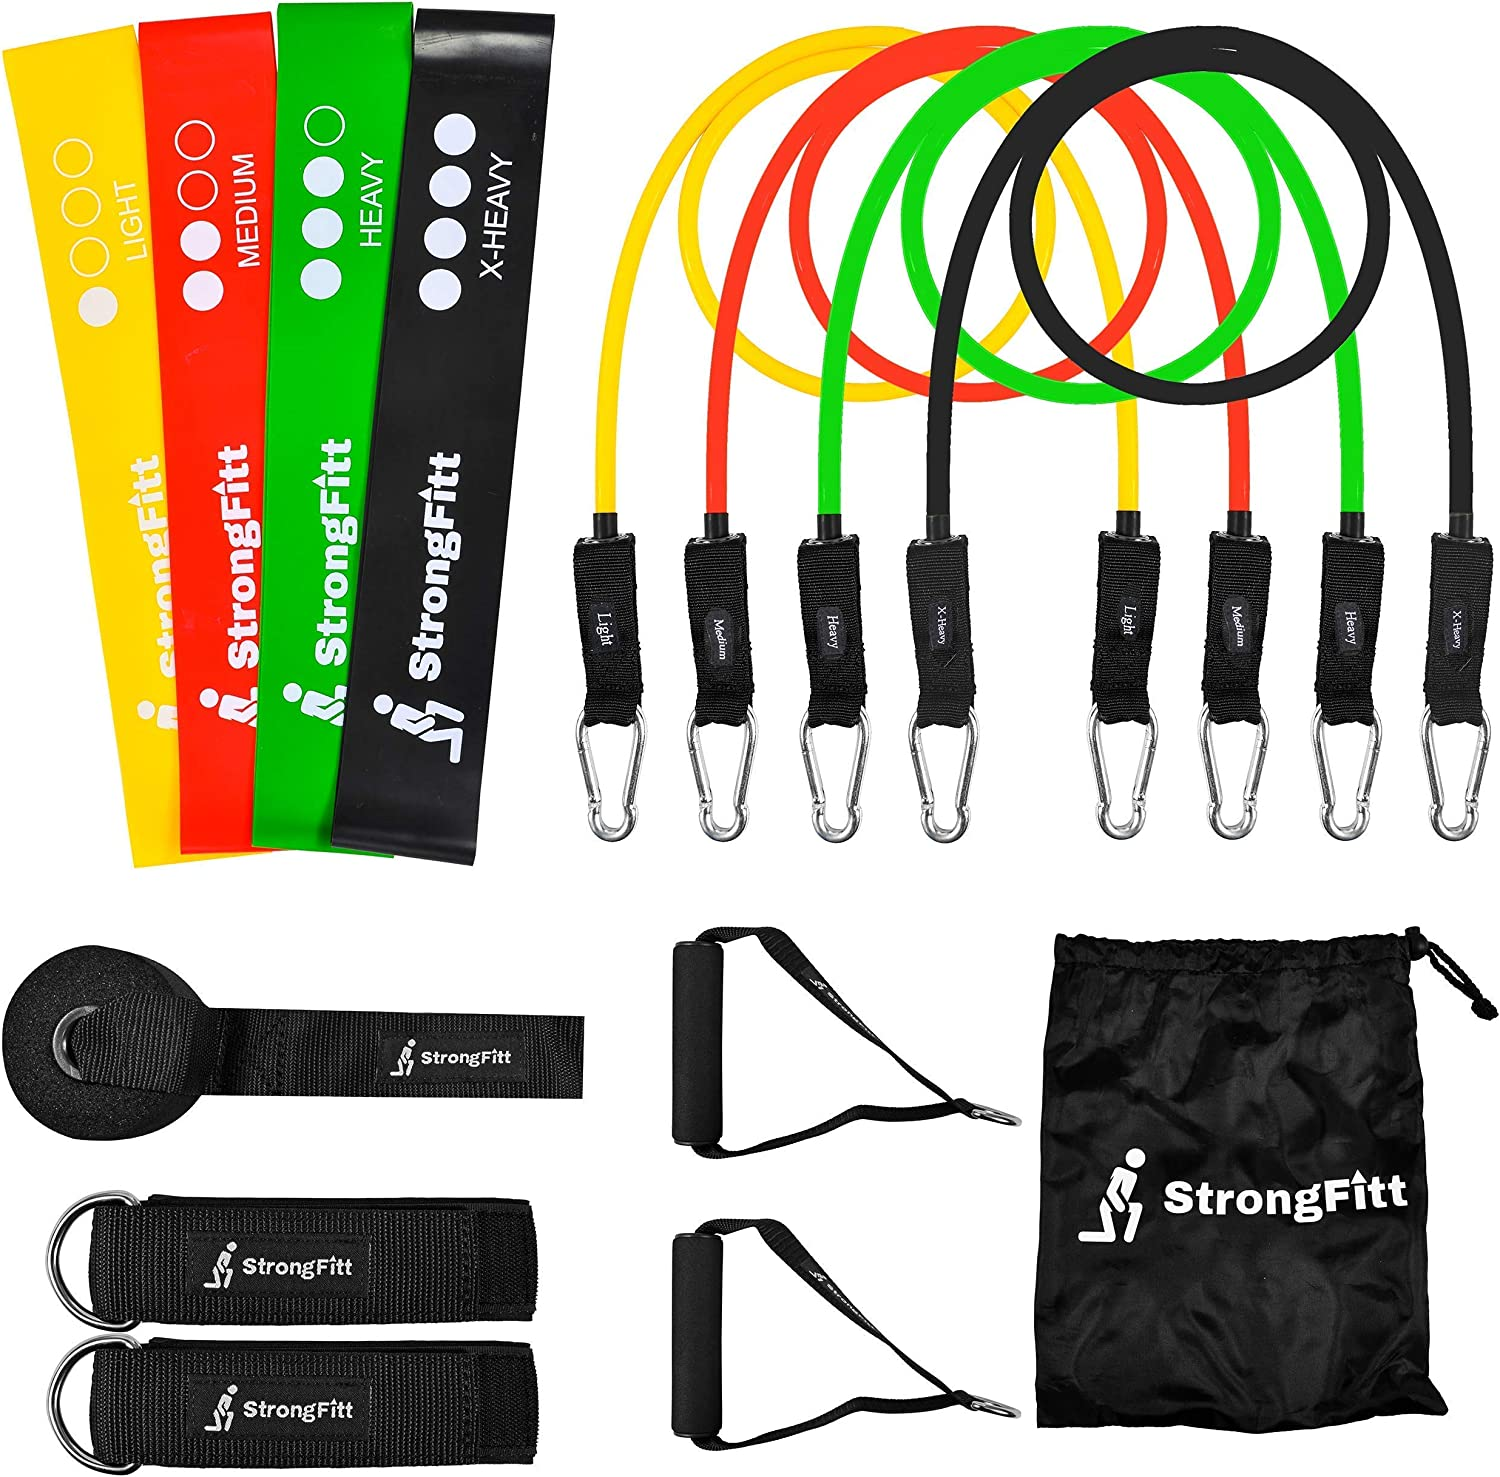 STRONG 6PC RESISTANCE BANDS SET LOOP HEAVY DUTY EXERCISE SPORT FITNESS GYM YOGA